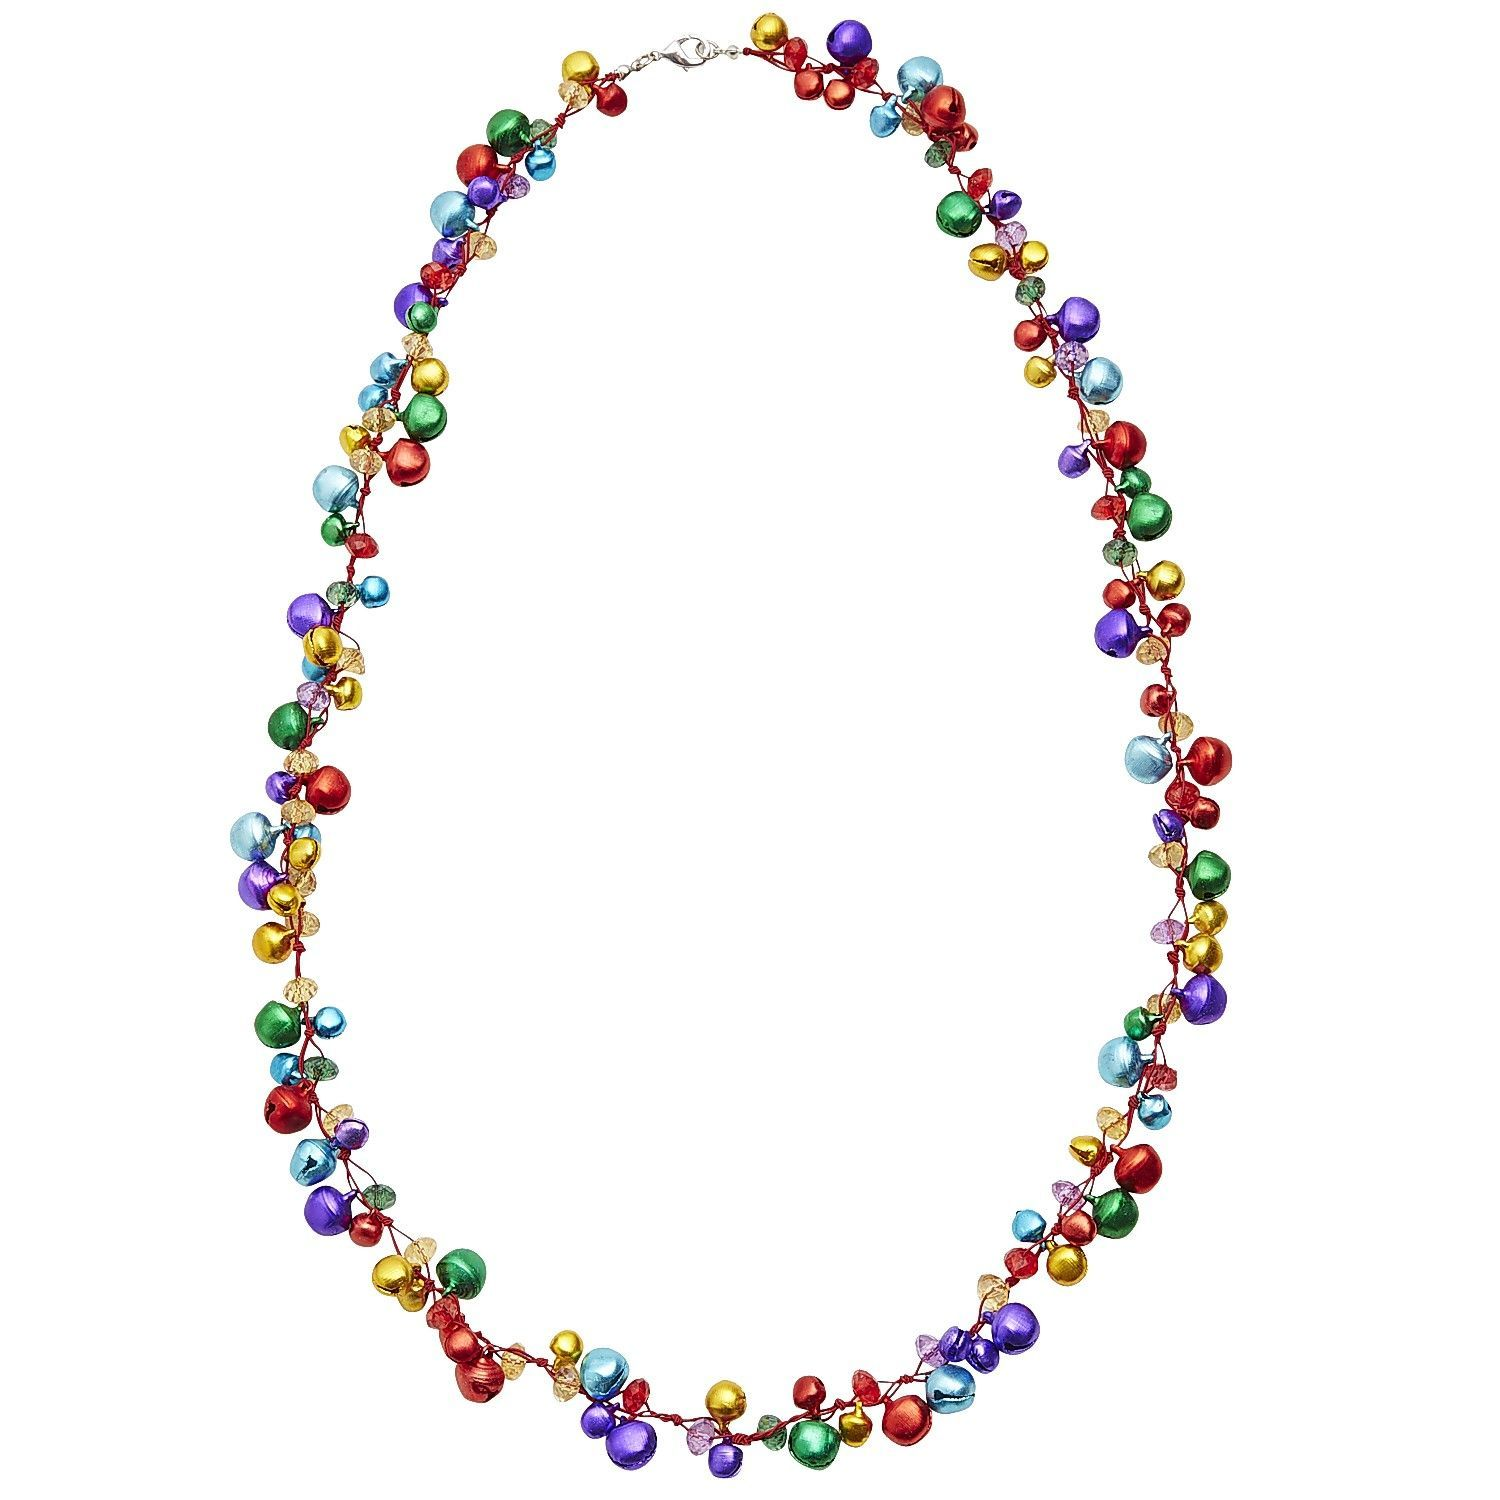 Jingle Bell Necklace Necklace, Beaded necklace, Jingle bells